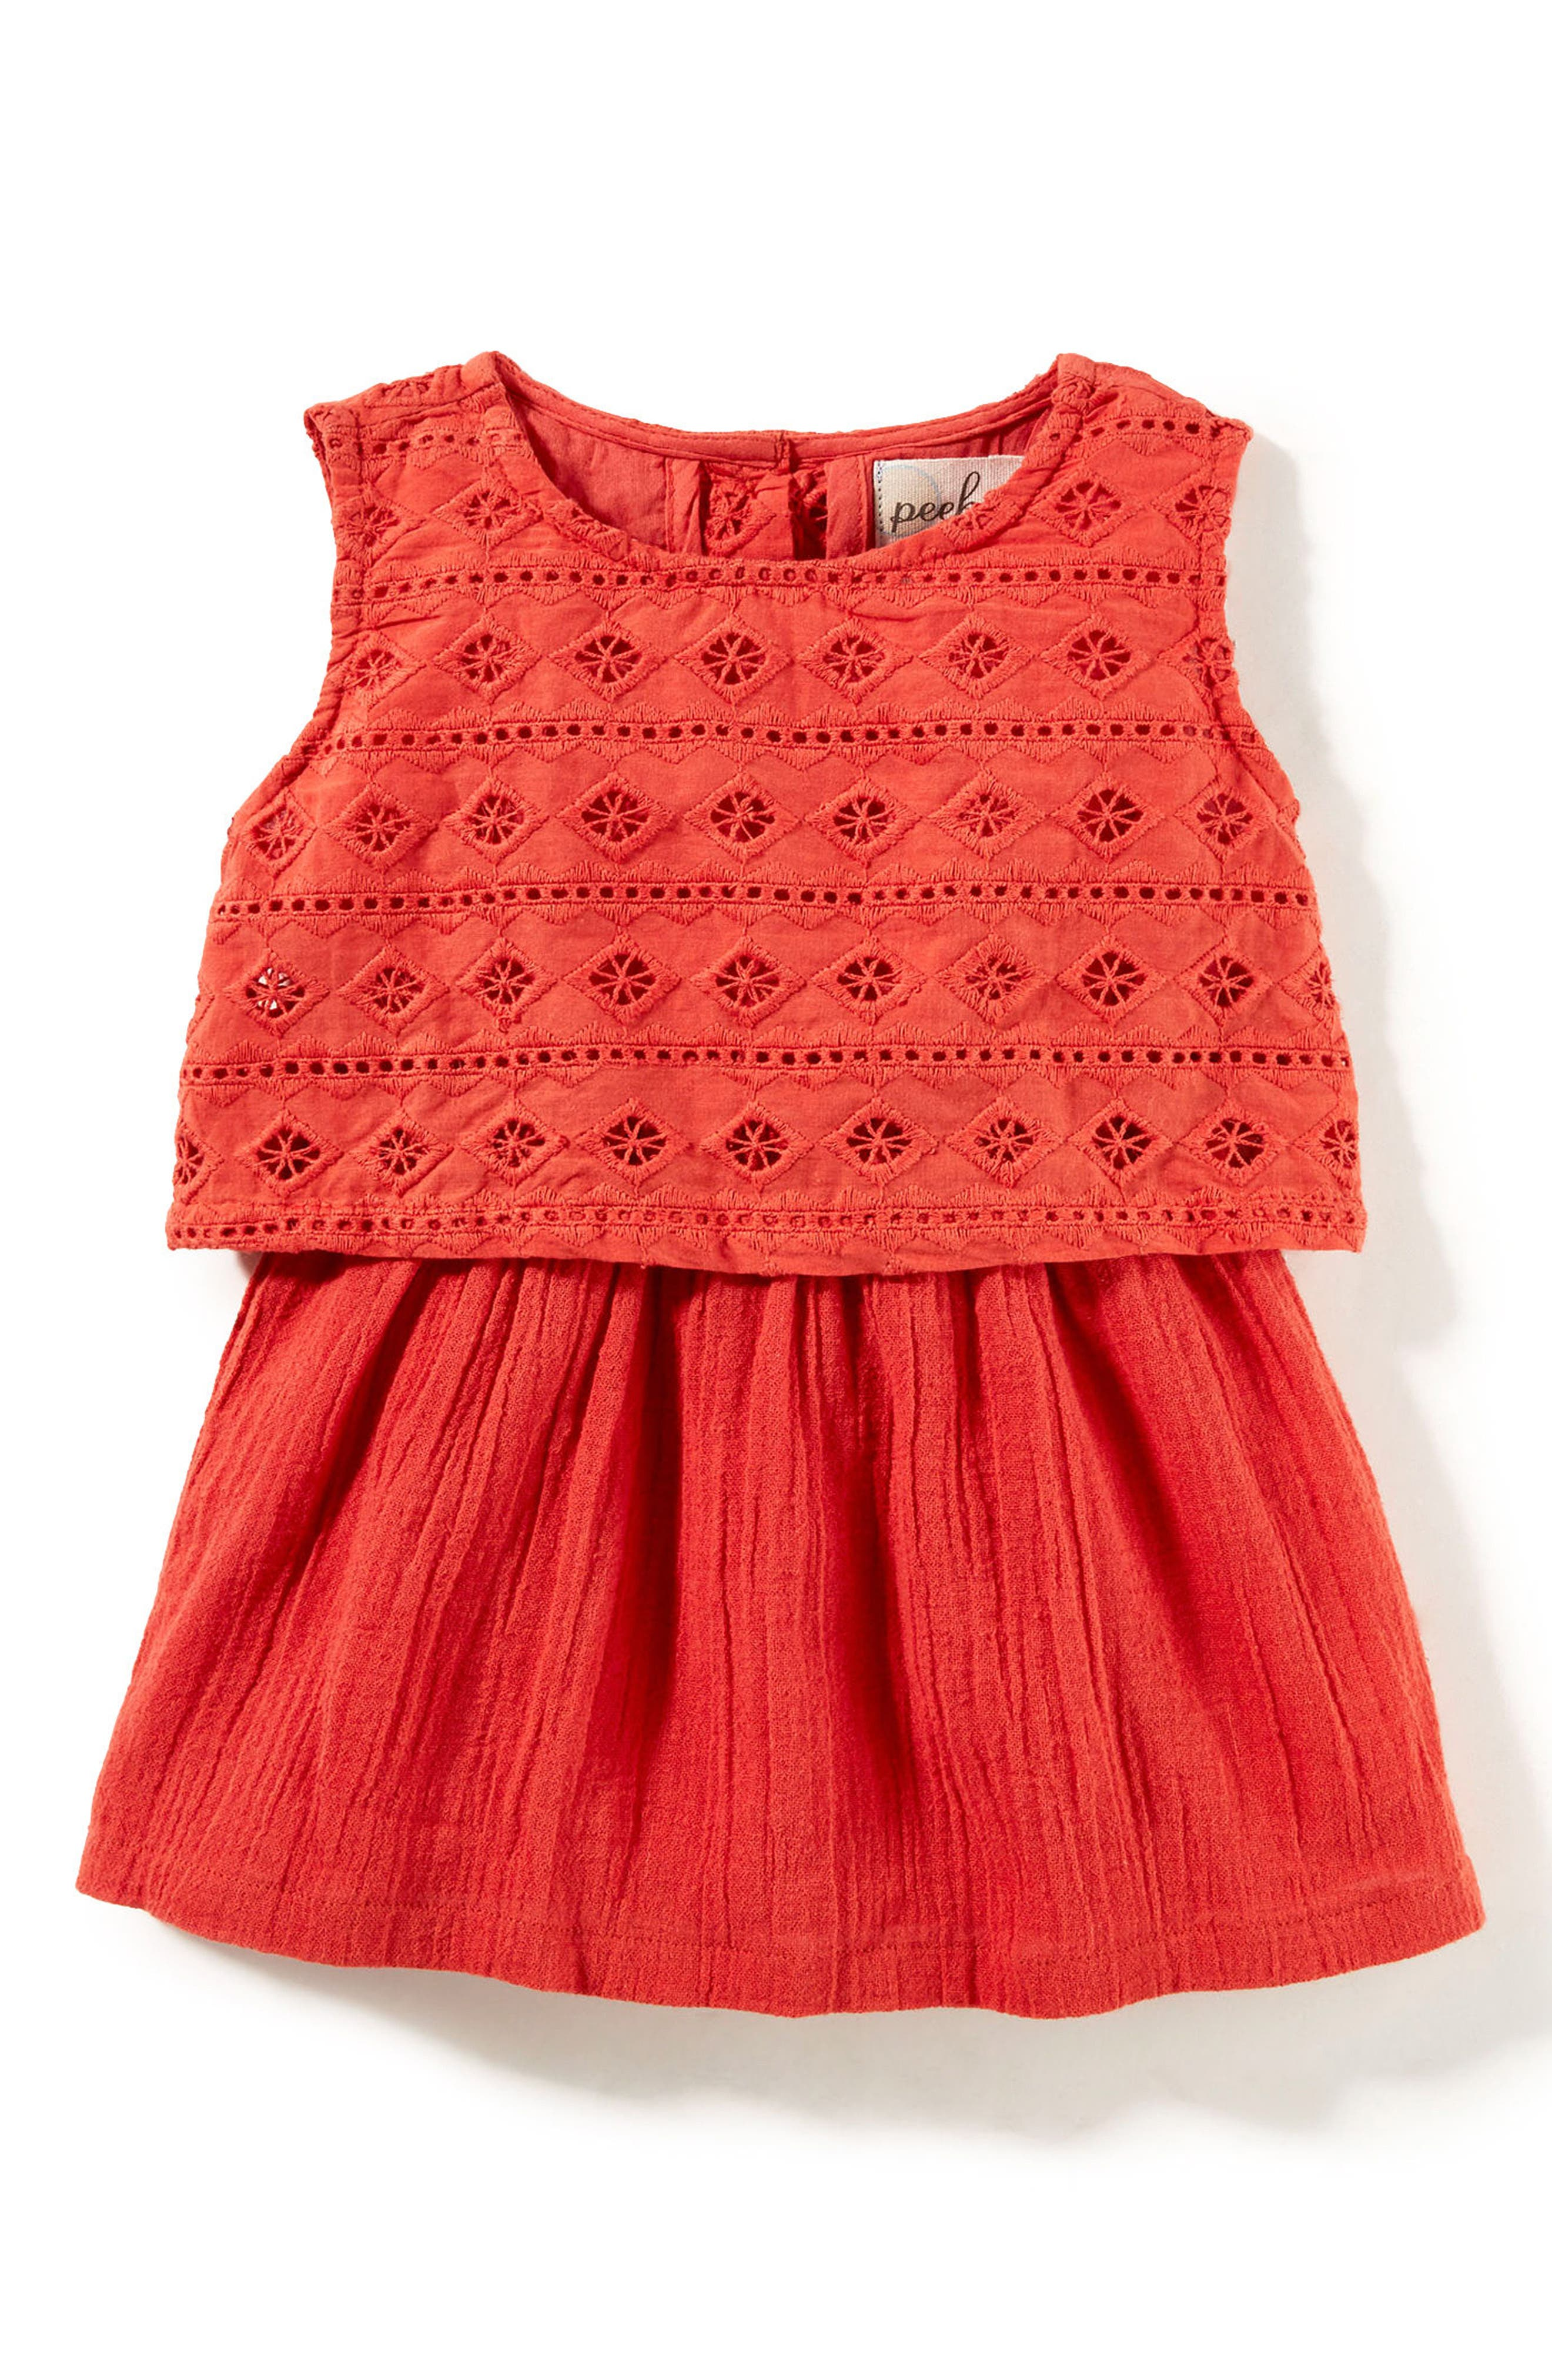 Alternate Image 1 Selected - Peek Embroidered Popover Dress (Baby Girls)